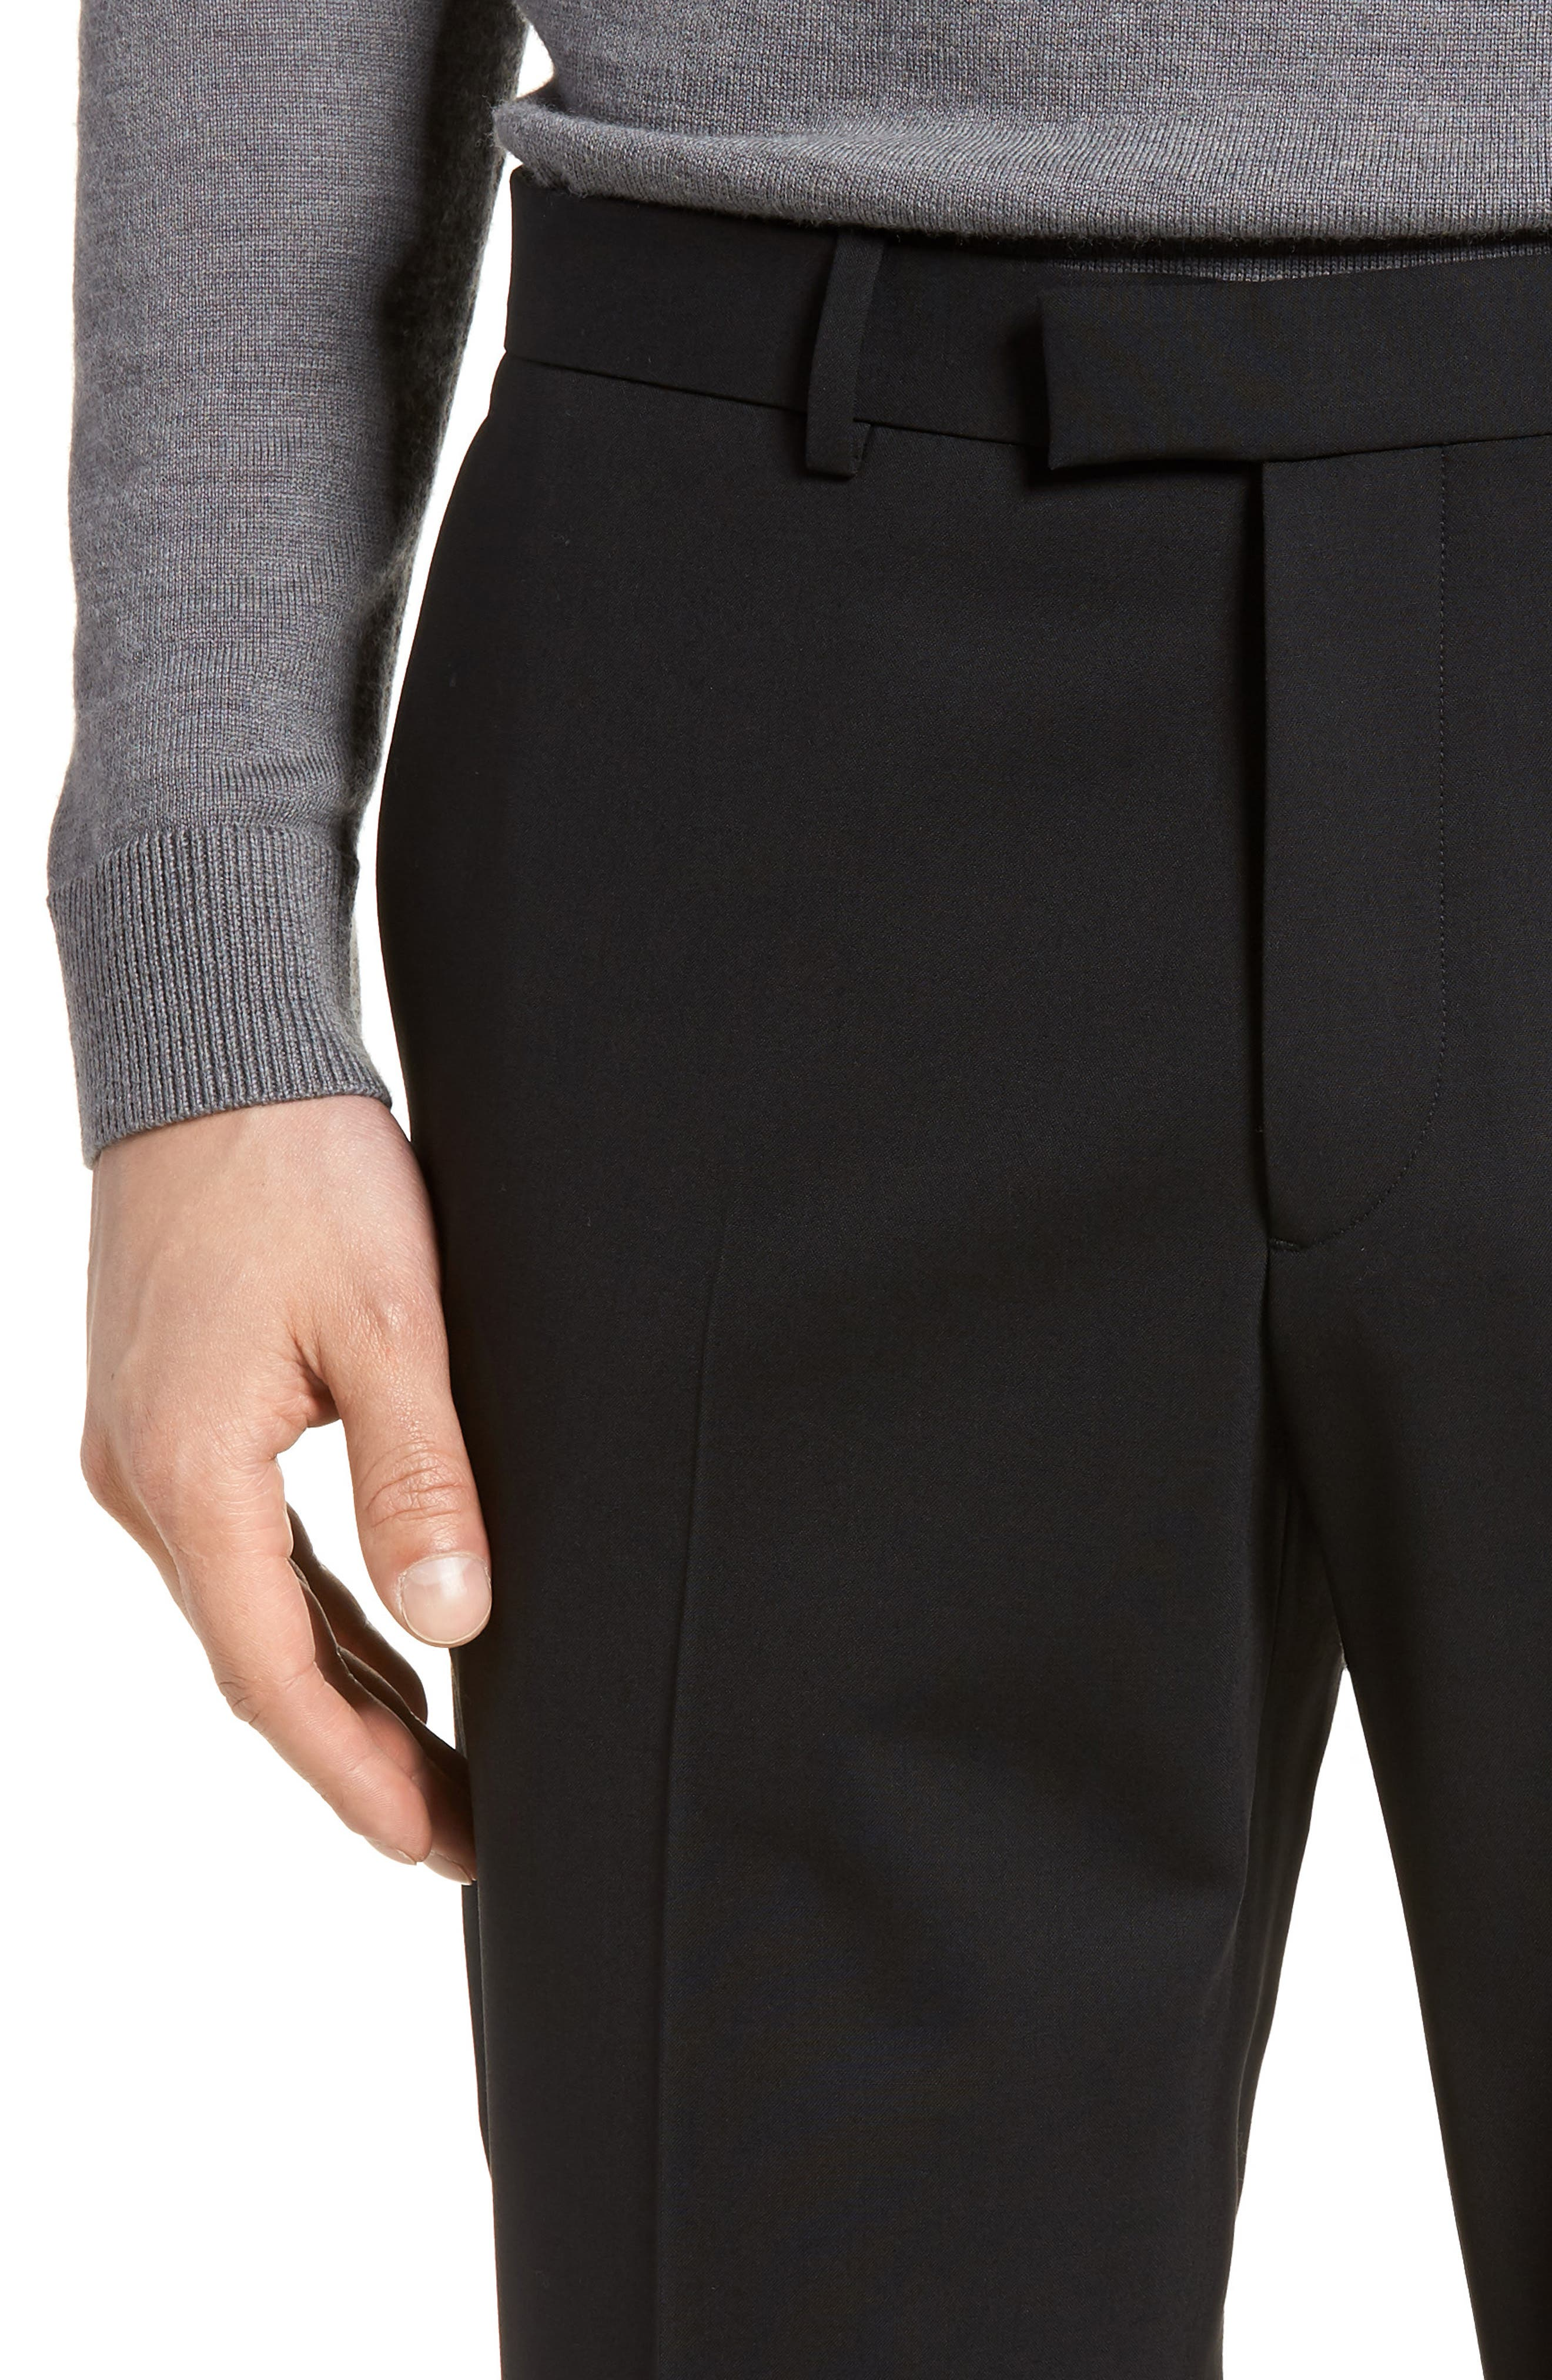 Marlo Flat Front Stretch Wool Pants,                             Alternate thumbnail 4, color,                             Black